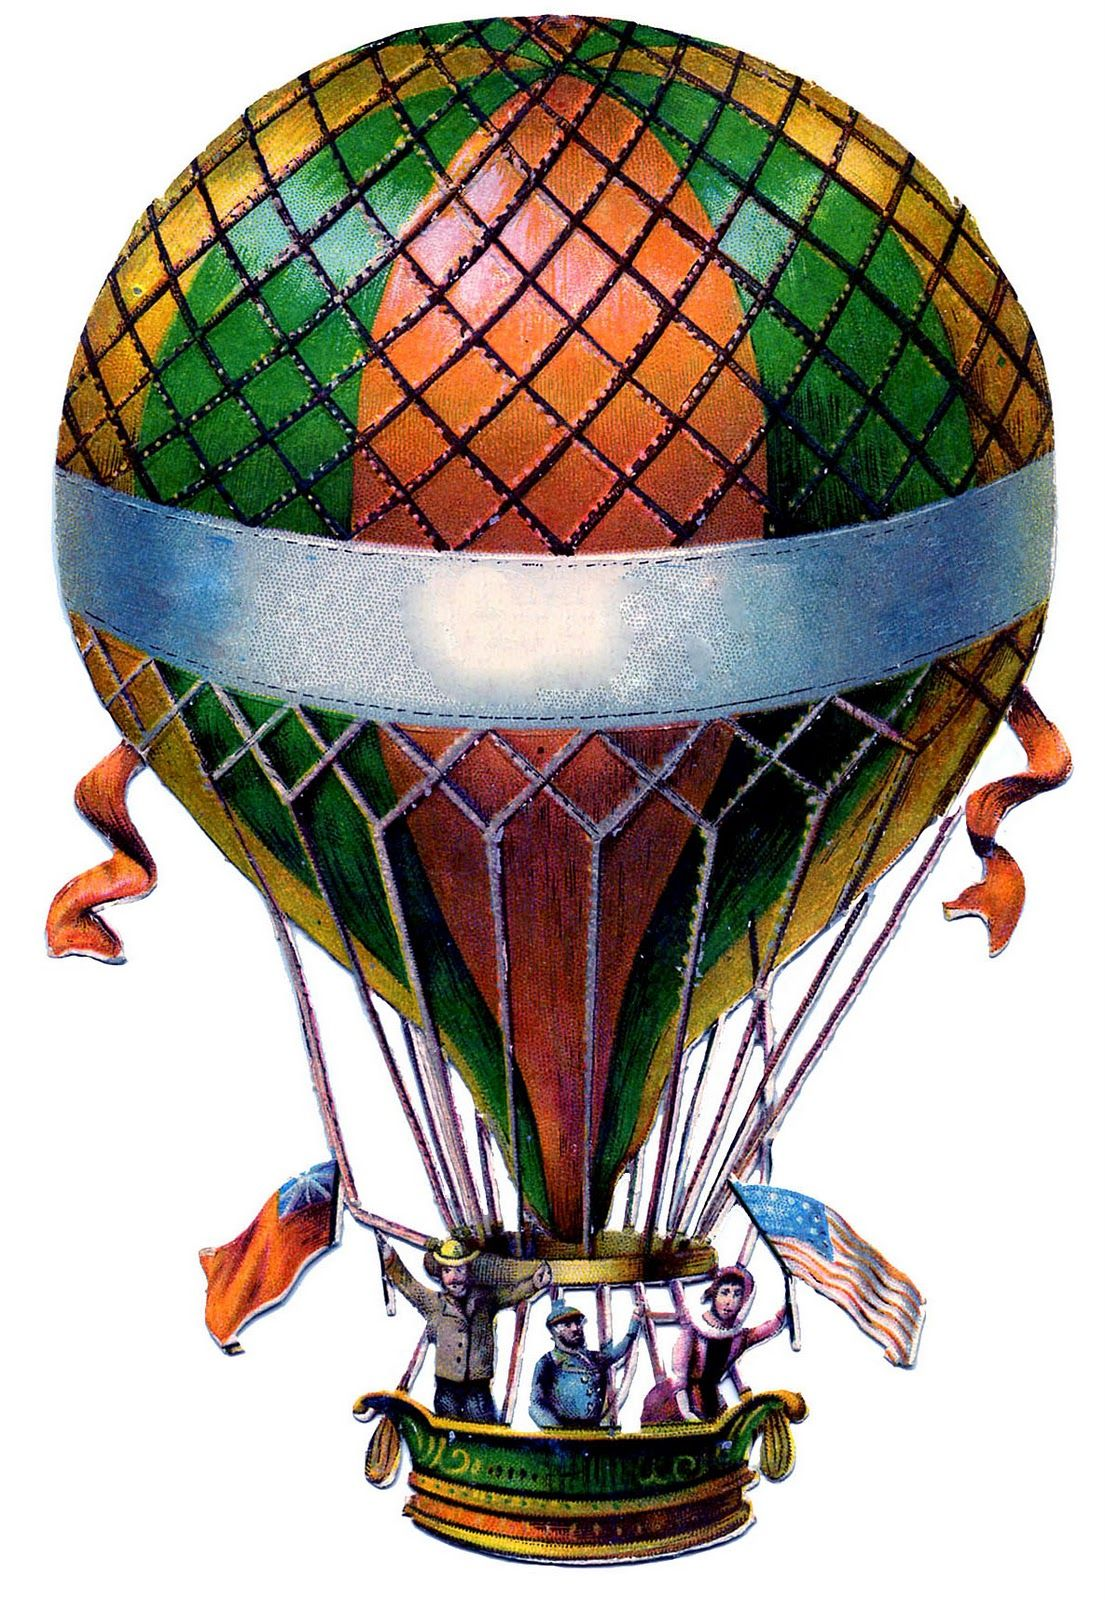 Antique Graphic Hot Air Balloon Steampunk Hot air